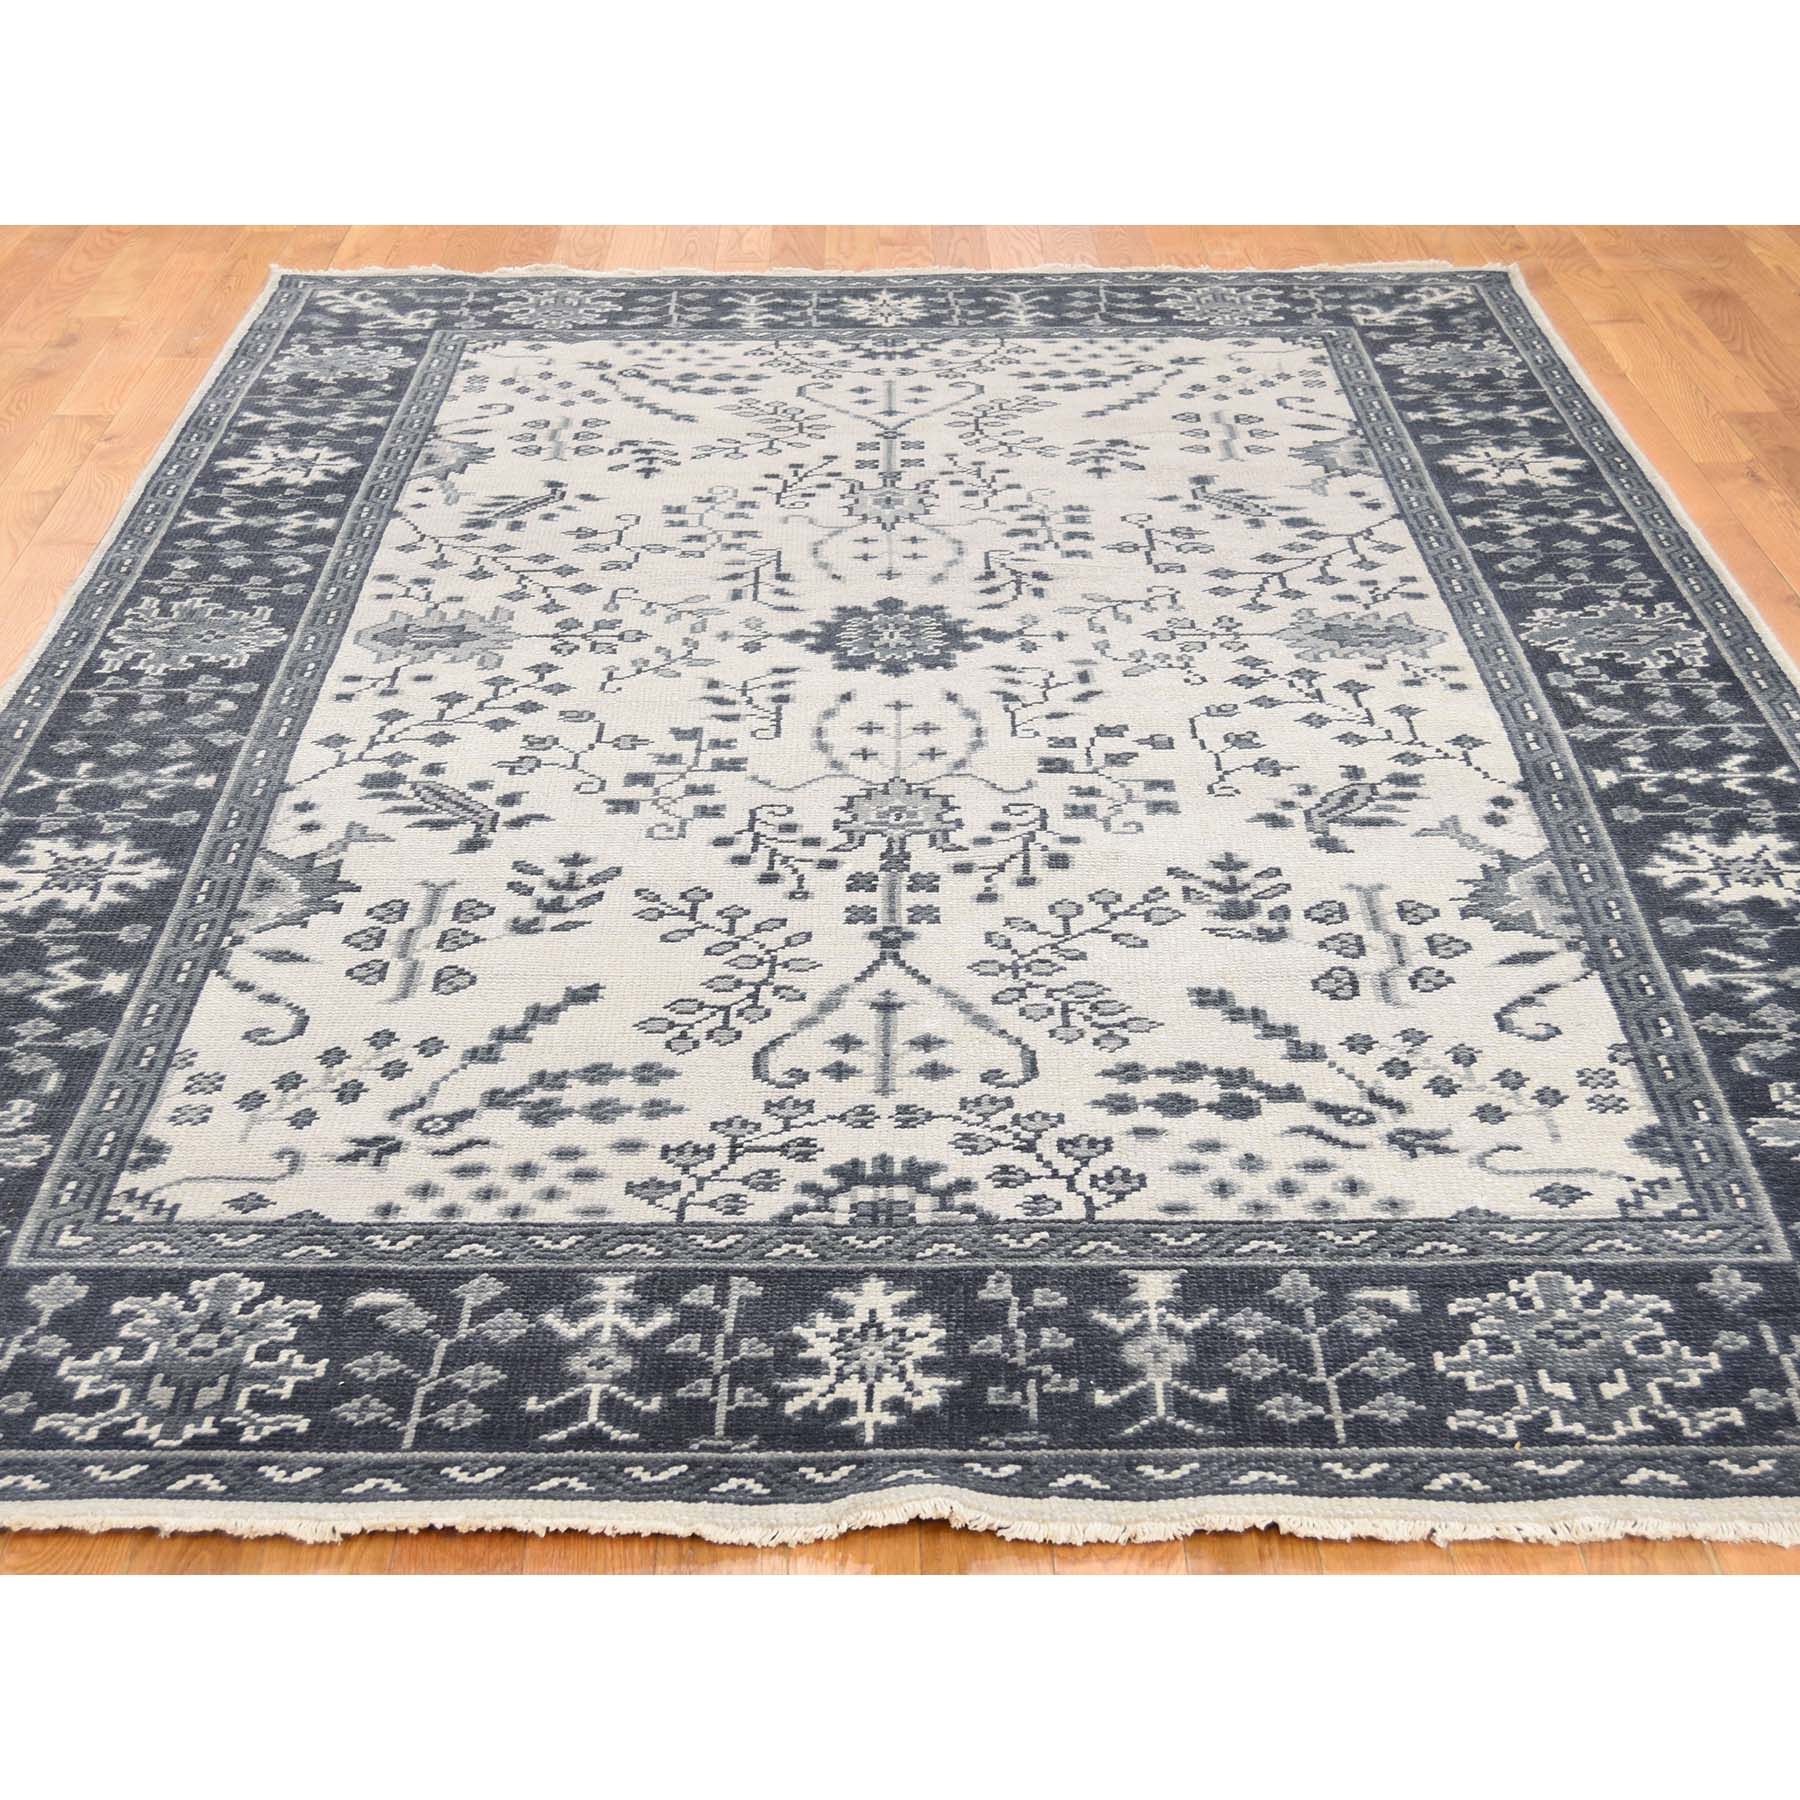 6-x9- Turkish Knot Oushak Sarouk Design Cropped Thin Hand-Knotted Oriental Rug